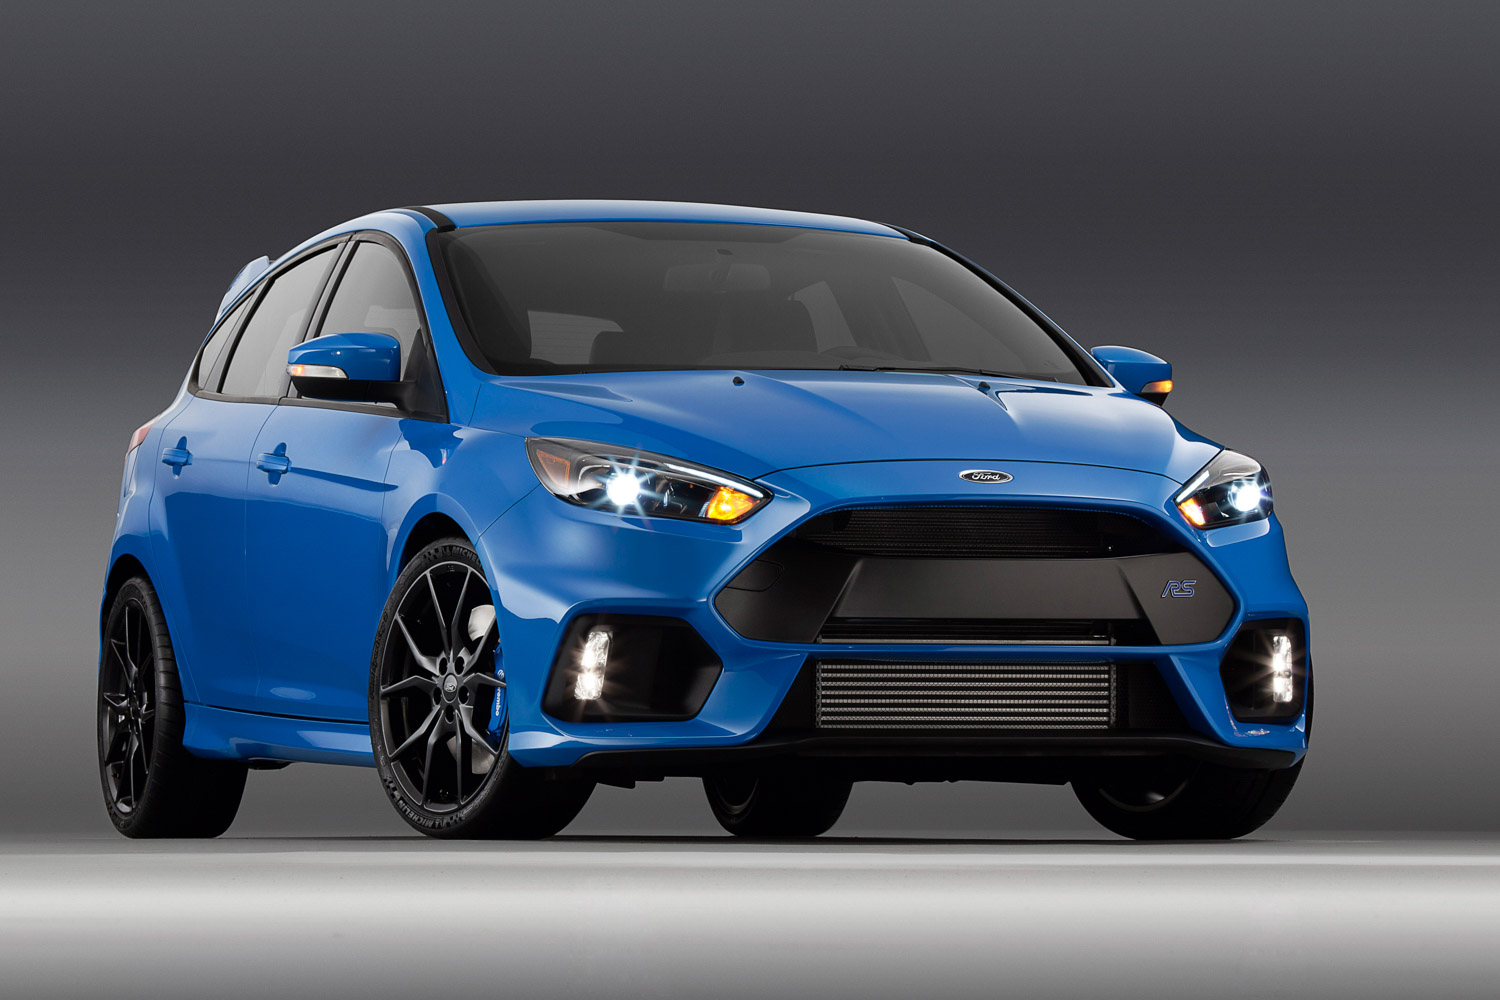 rs prices industry fordfocusrs ford on and stats price more news info focus revealed by car